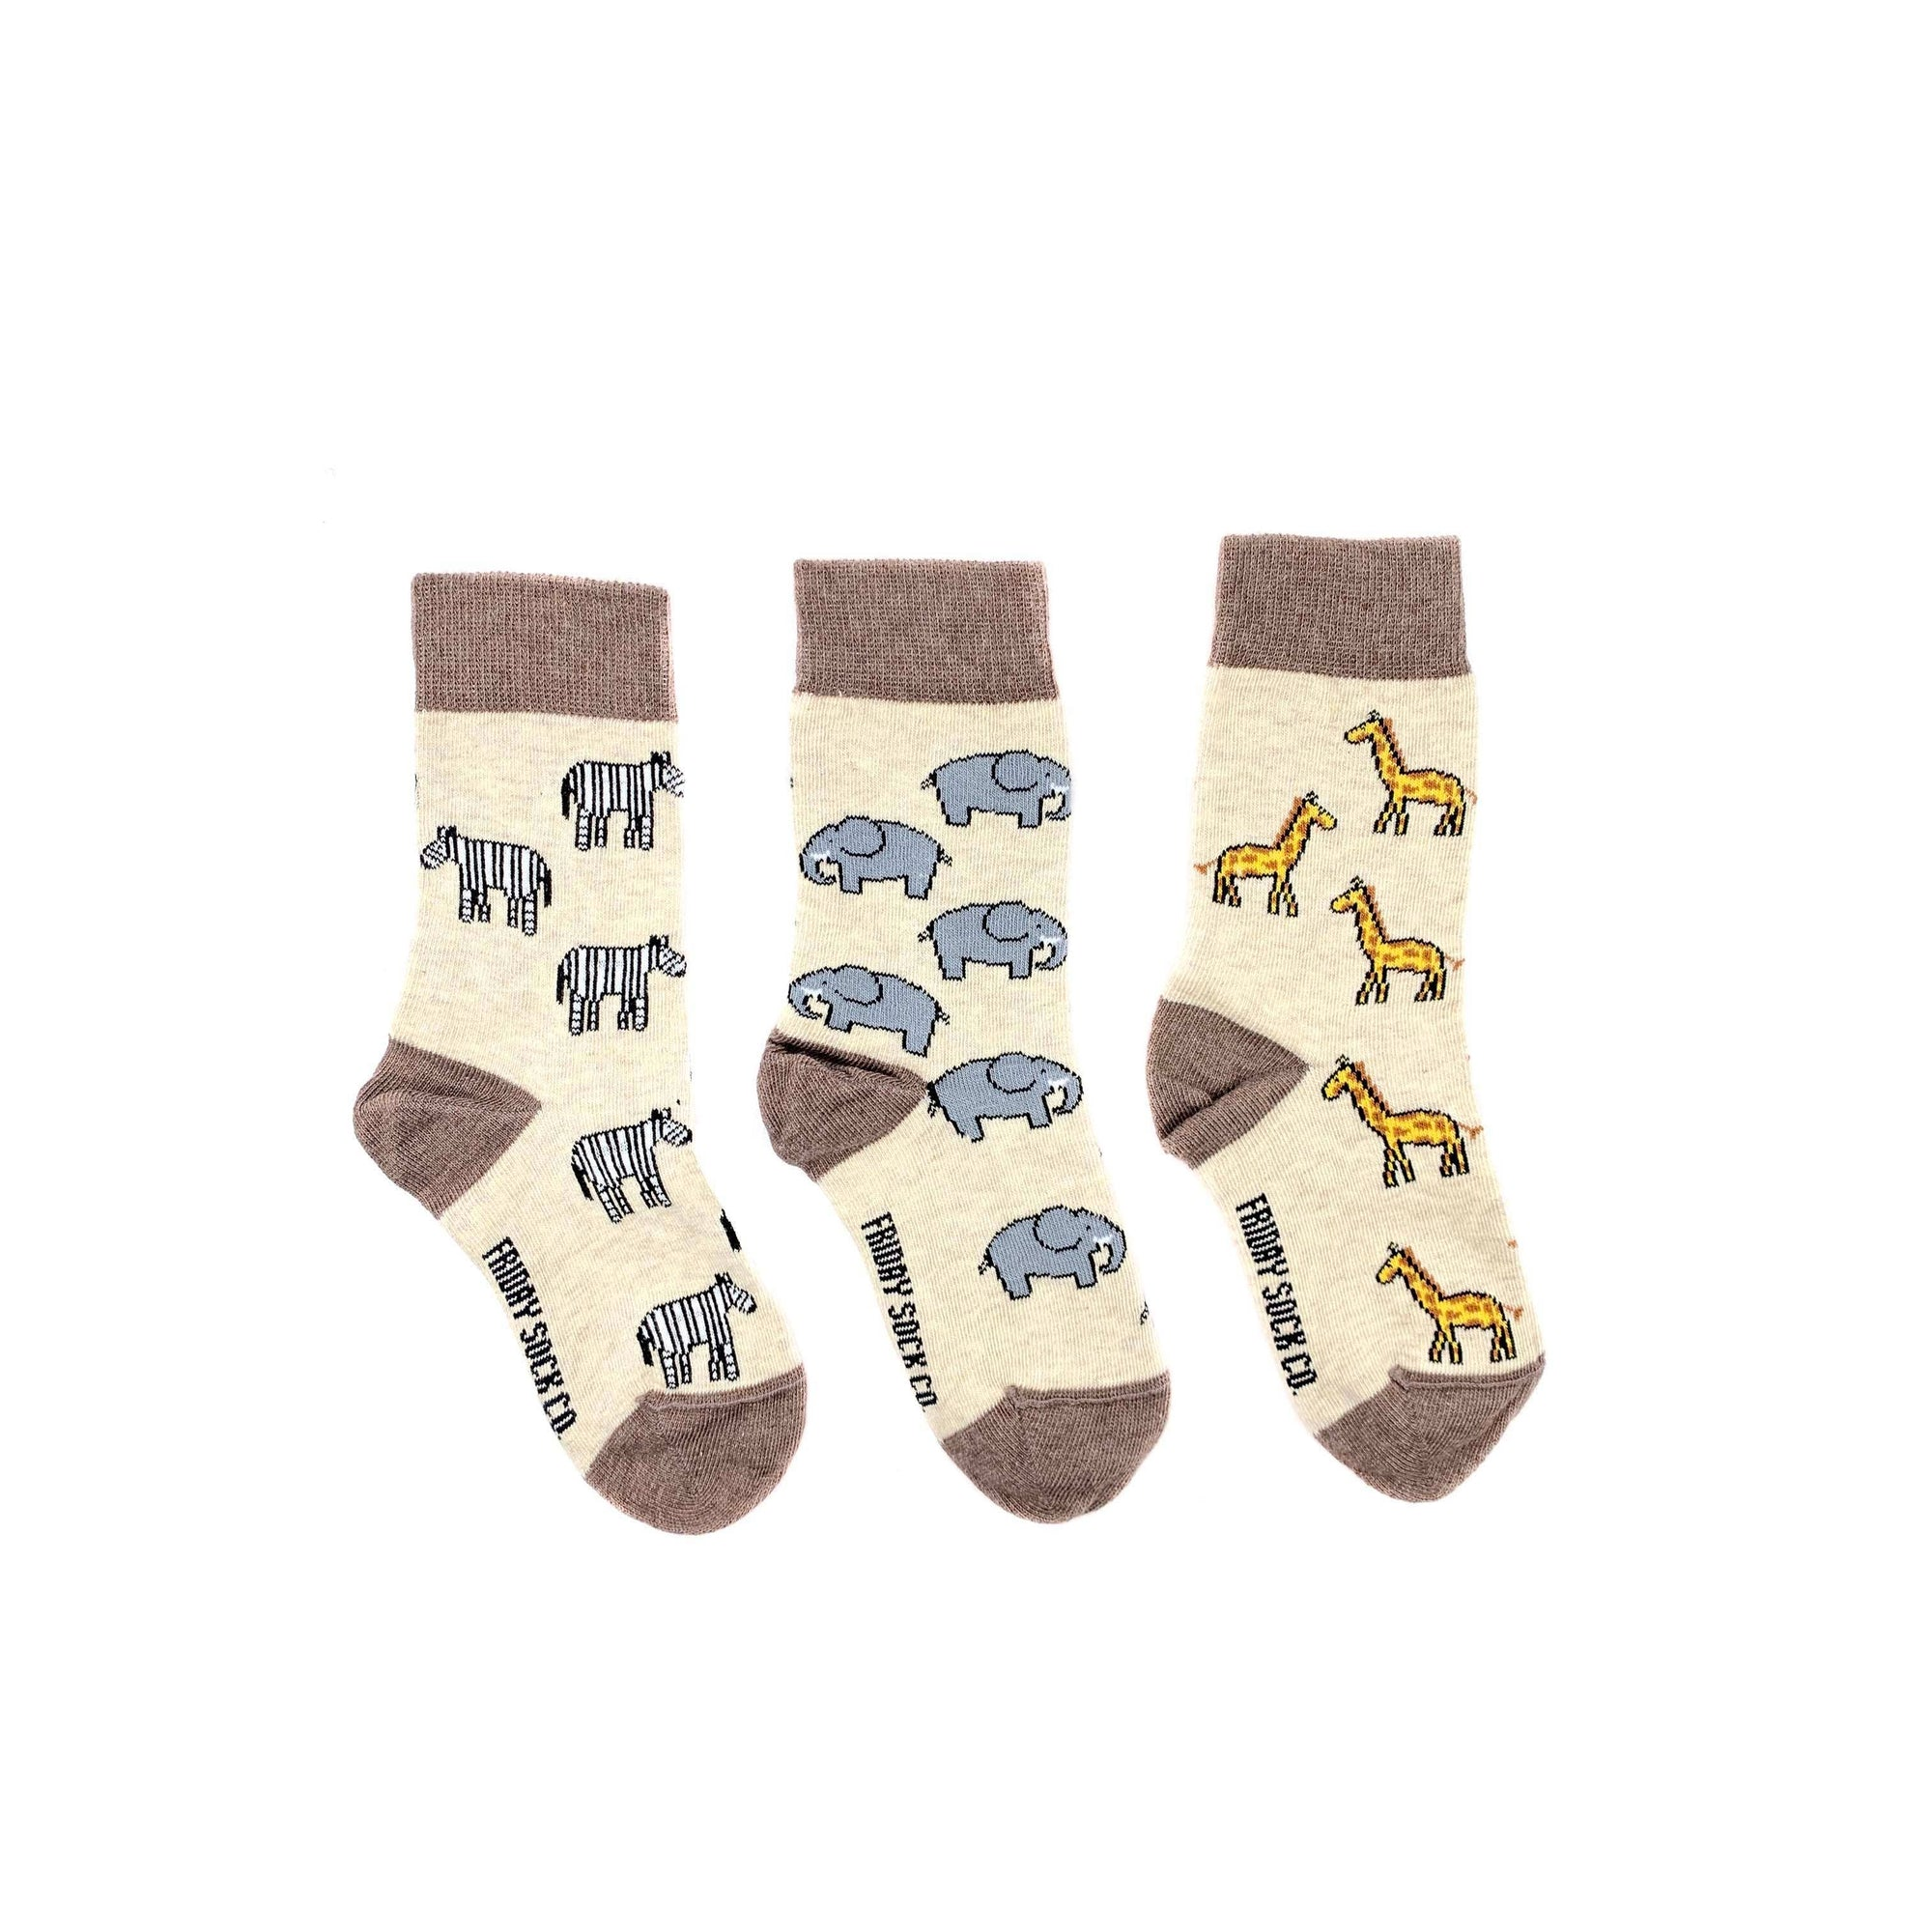 Friday Sock Co. Kid's Socks | Safari | Mismatched